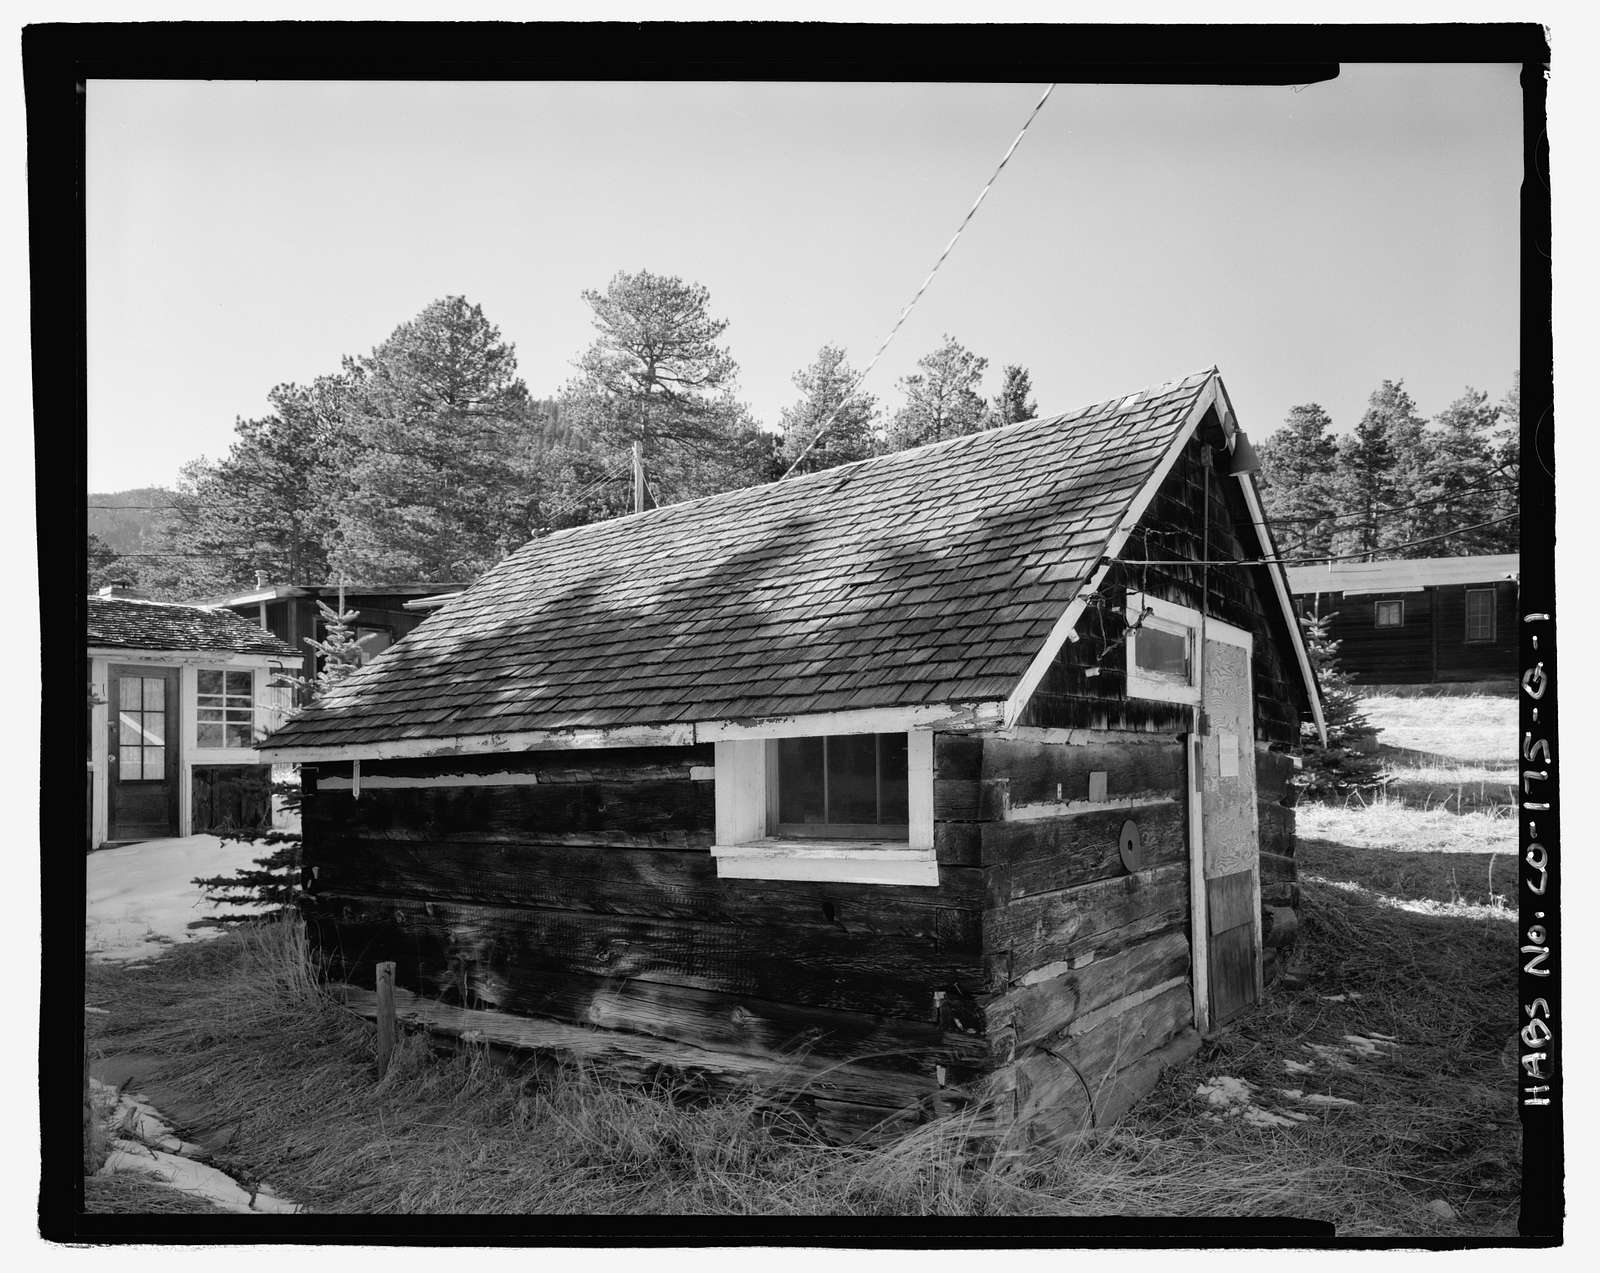 McGraw Ranch, Ice House-Storage Shed, McGraw Ranch Road, Estes Park, Larimer County, CO